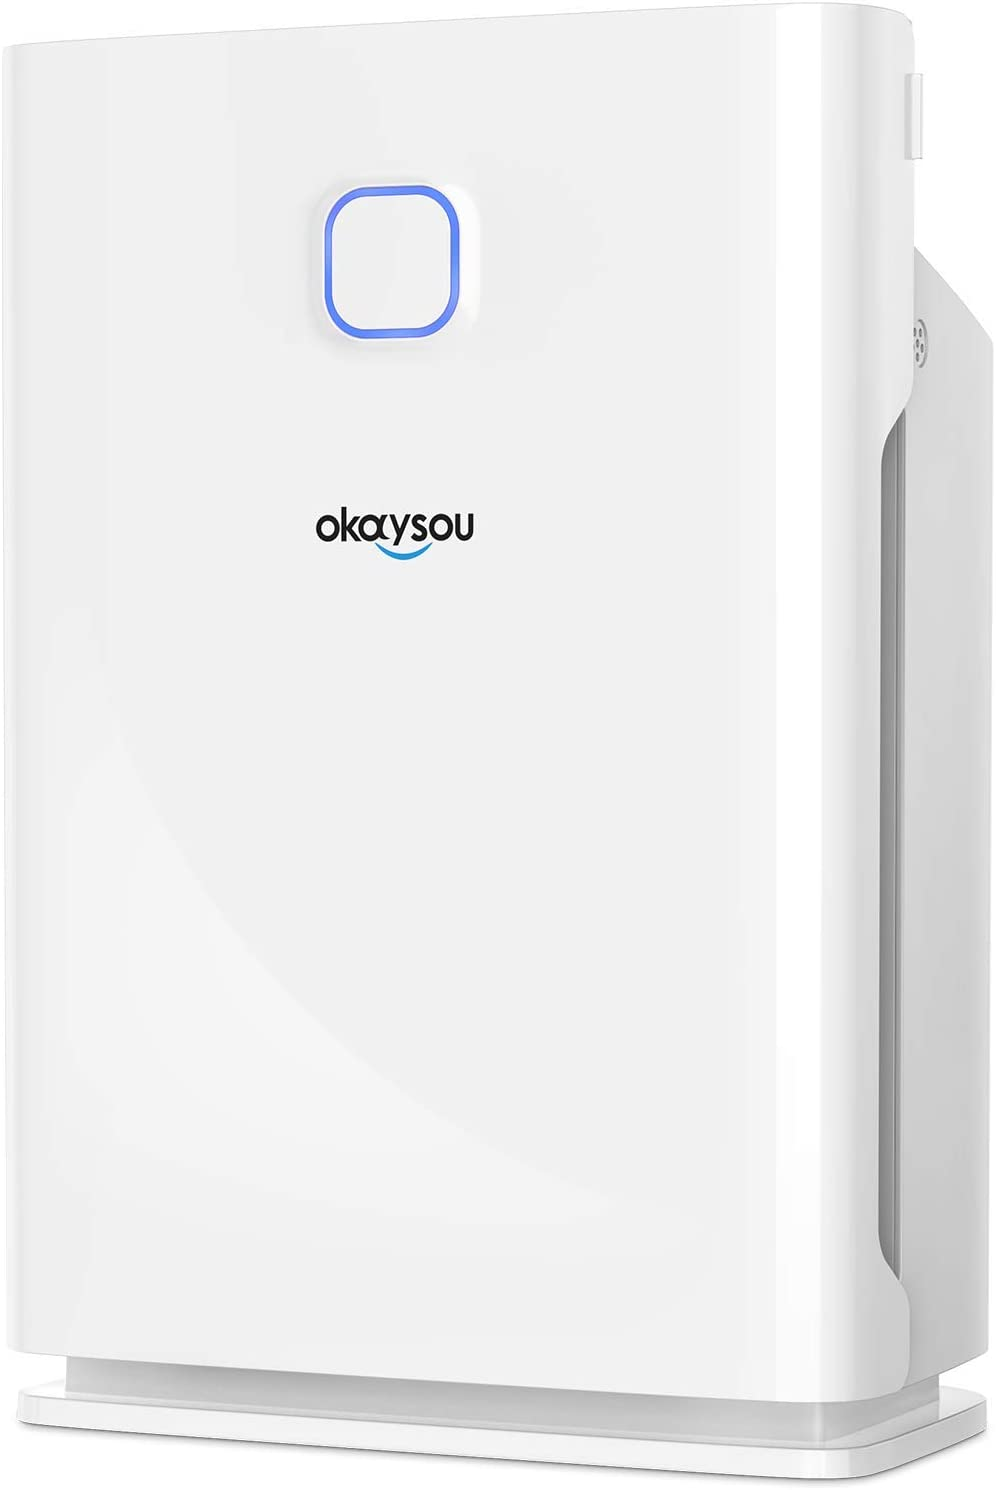 Okaysou Smart AirMax10L Pro Air Purifier with Washable Dual-Nanois Three Filters, Medical Grade 5-in-1 Home Air Cleaner for Pets, Odors, Smokers, Extra-Large Room, 1000 Sq Ft, White